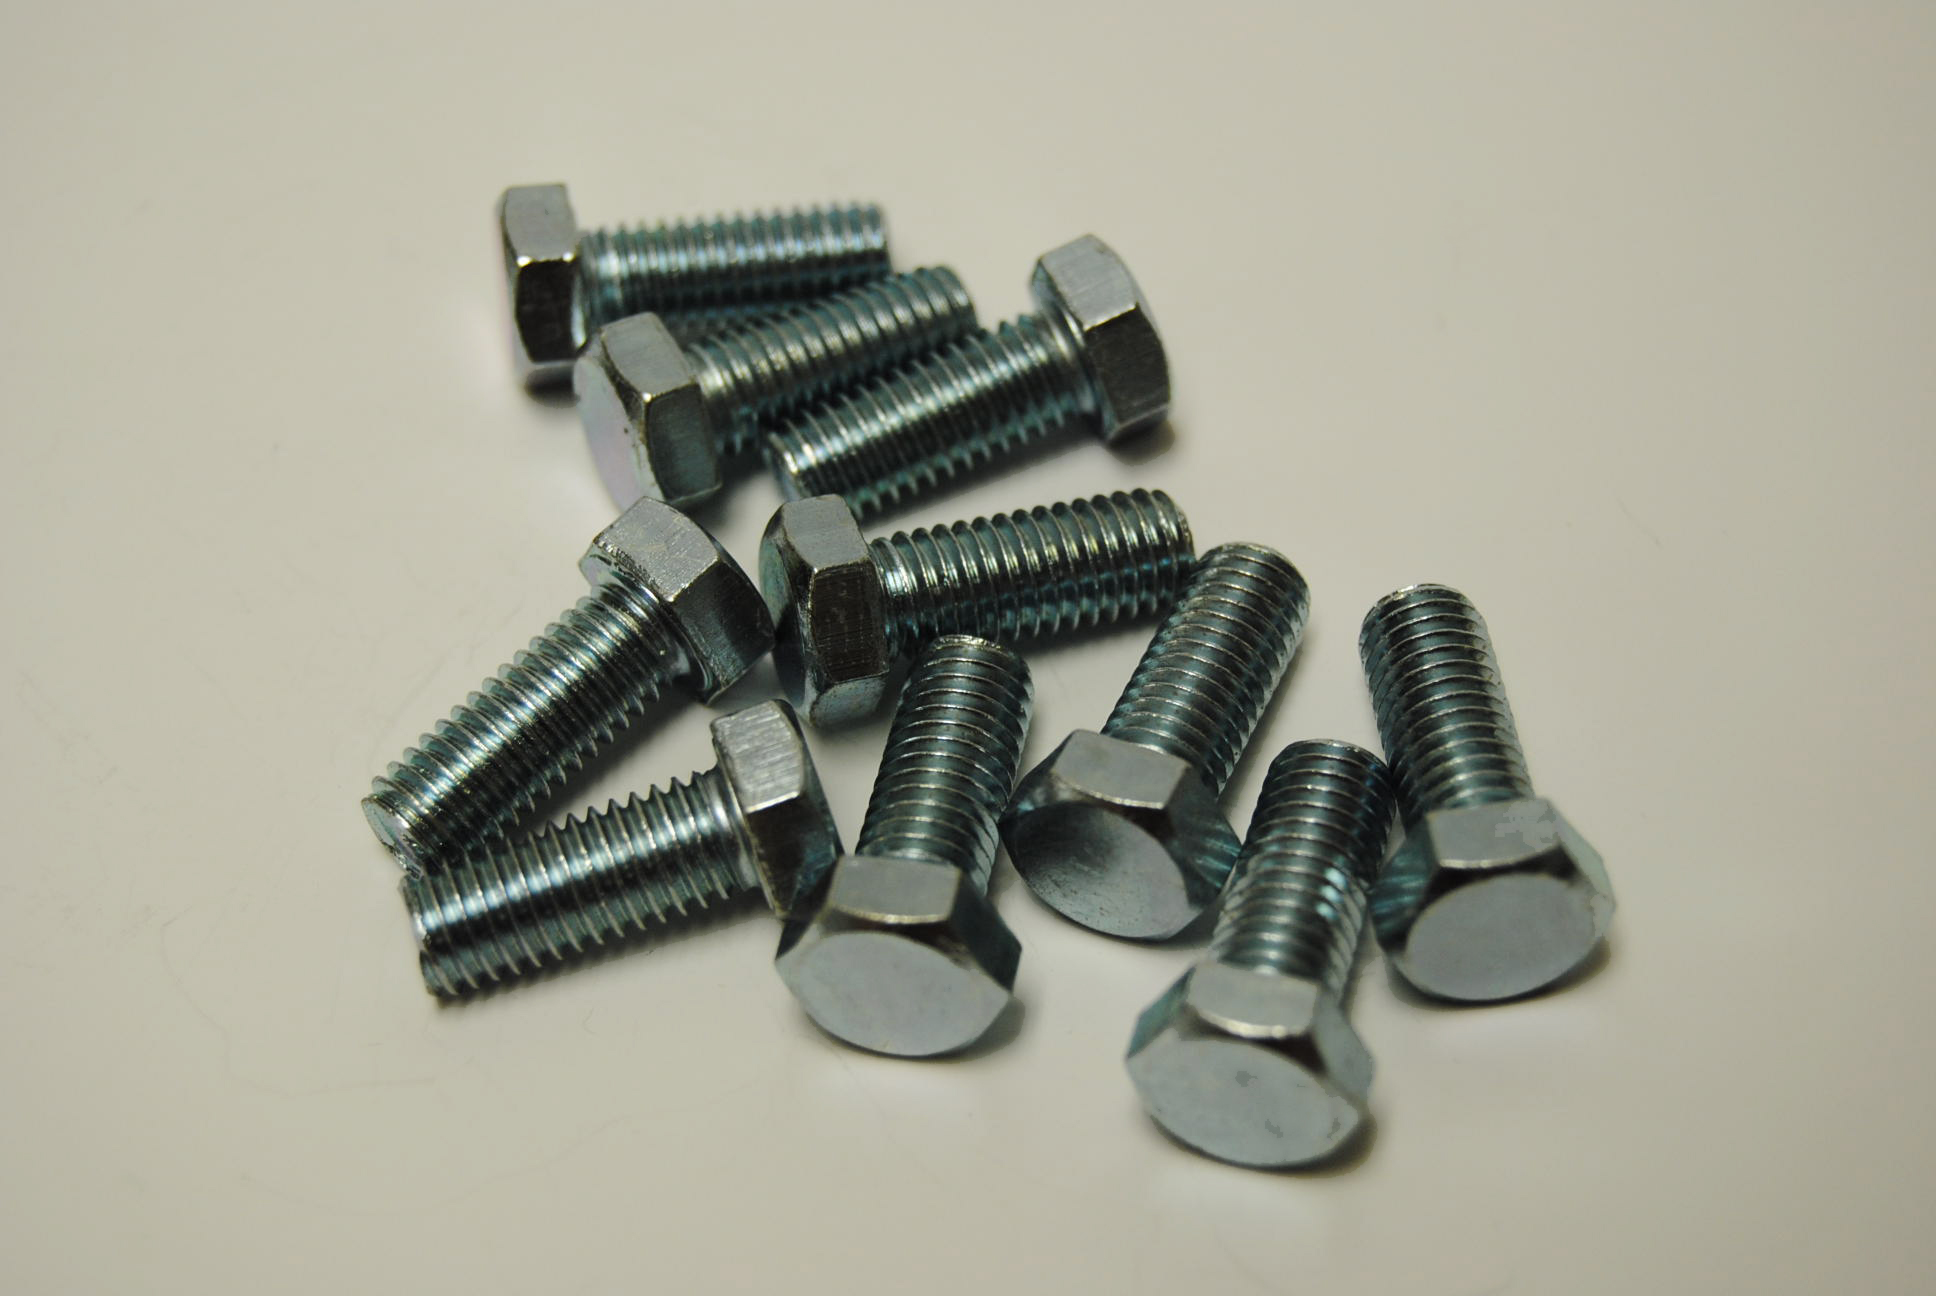 8mm x 20mm Hex Head Bolts - ISO